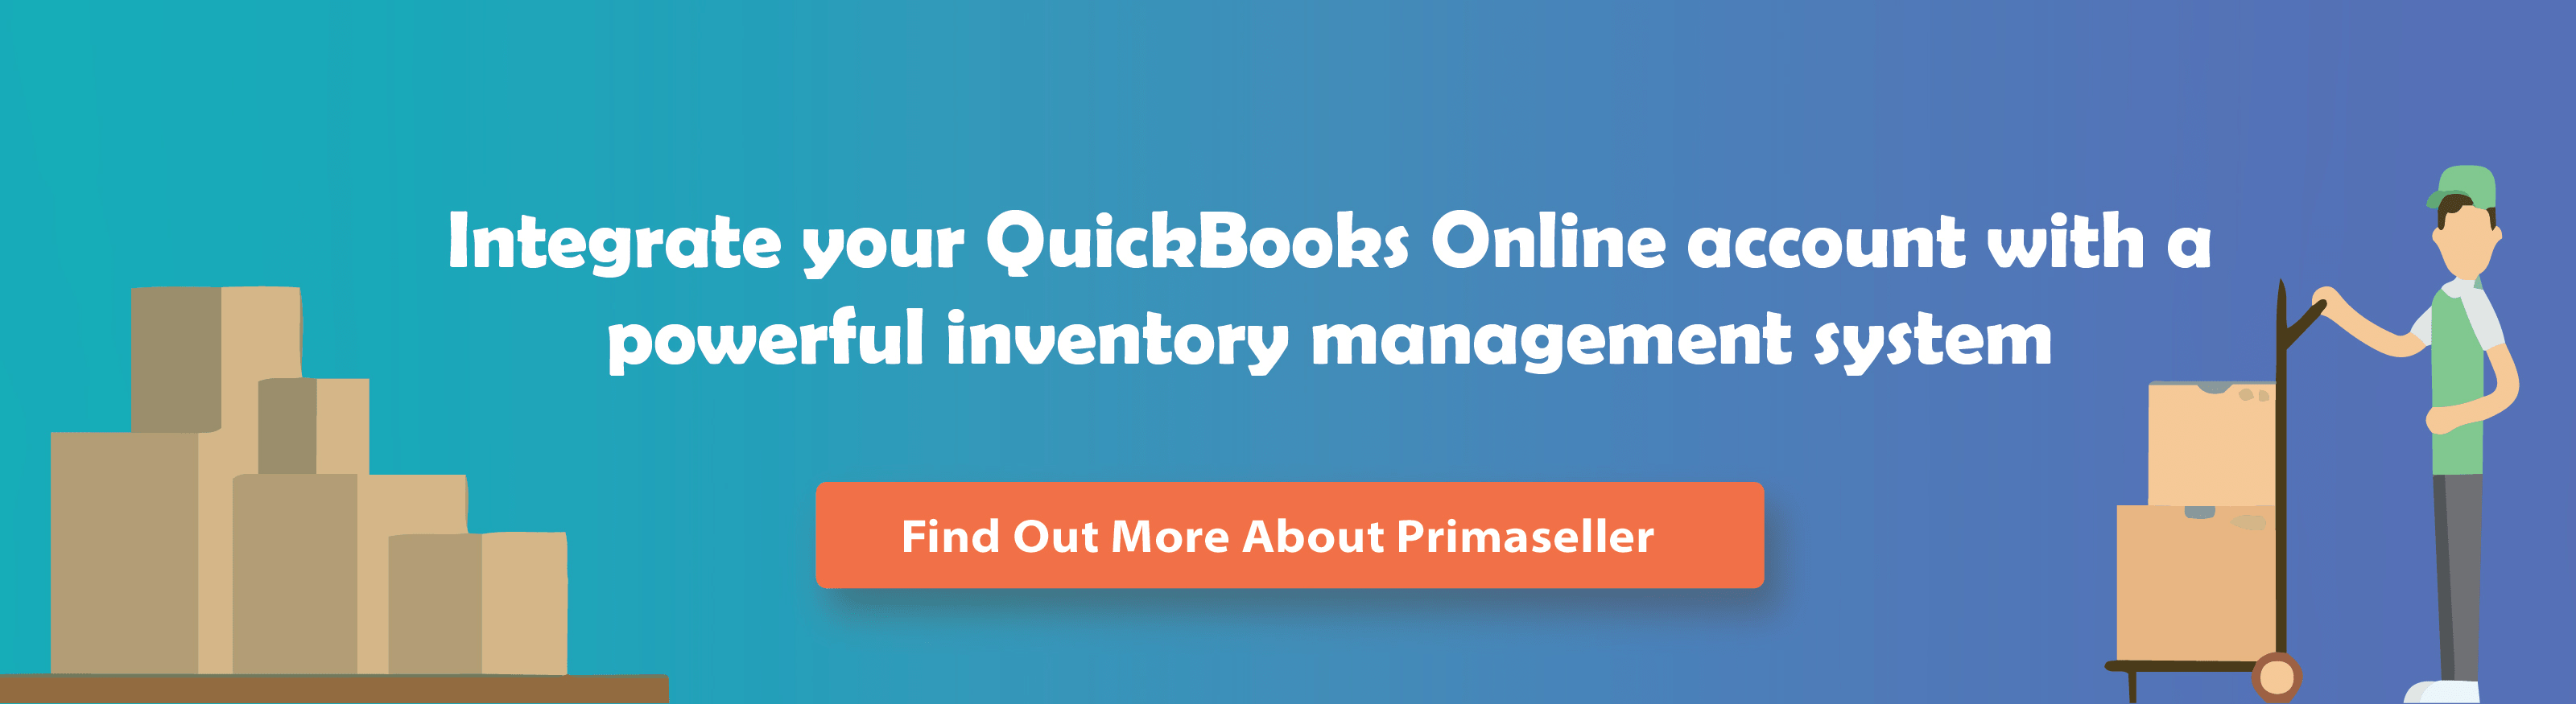 quickbooks-inventory-management-banner